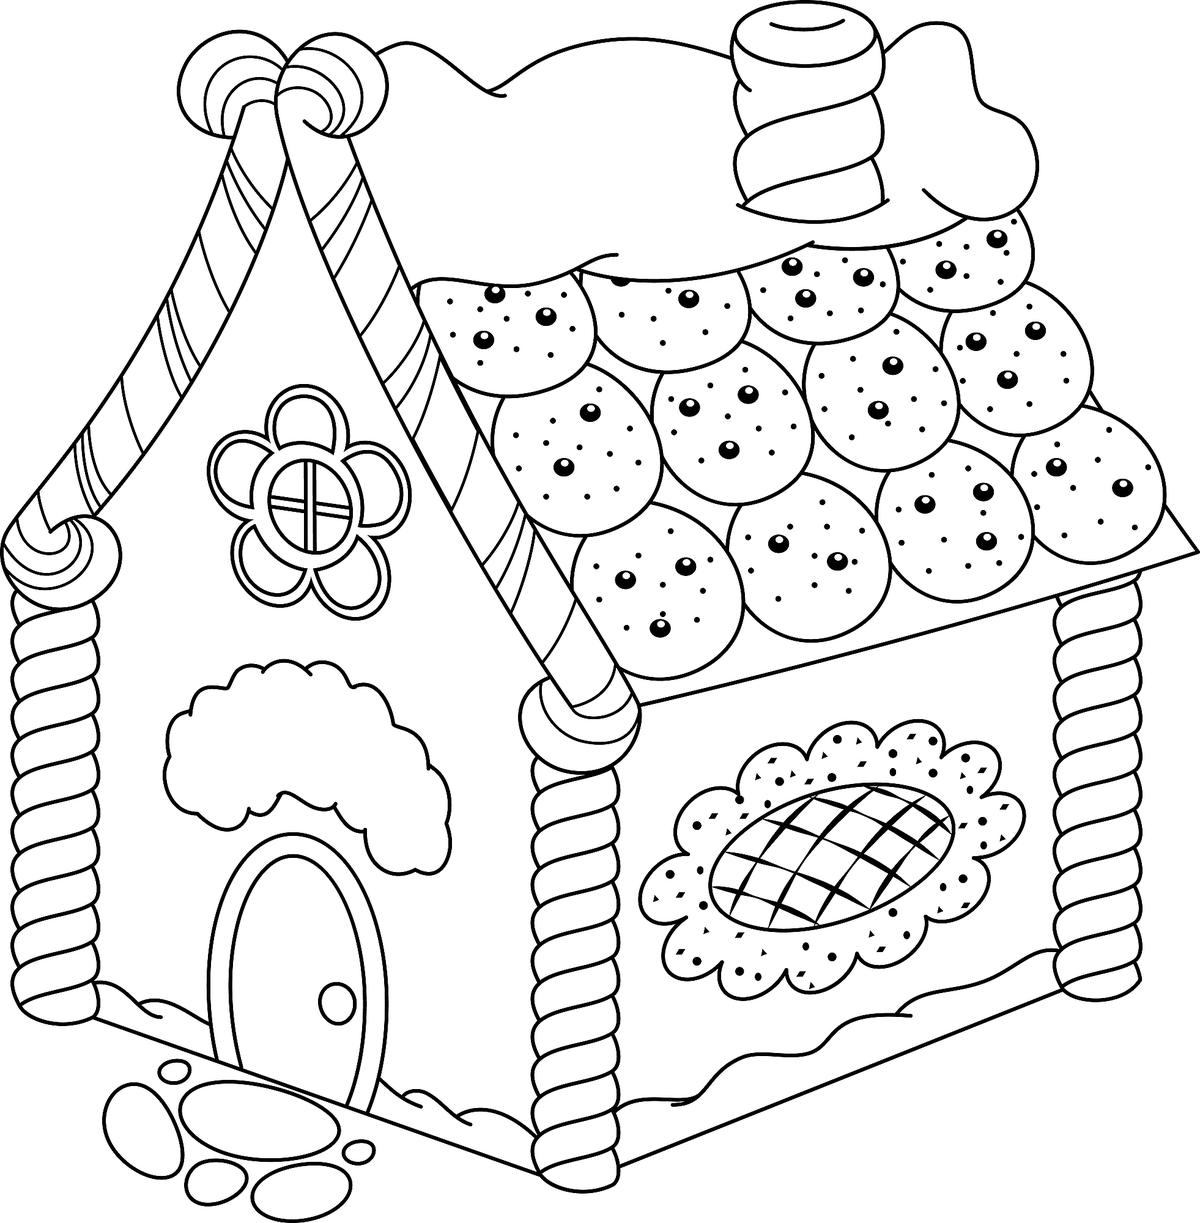 coloring gingerbread house 27 christmas coloring pages gingerbread house images house coloring gingerbread